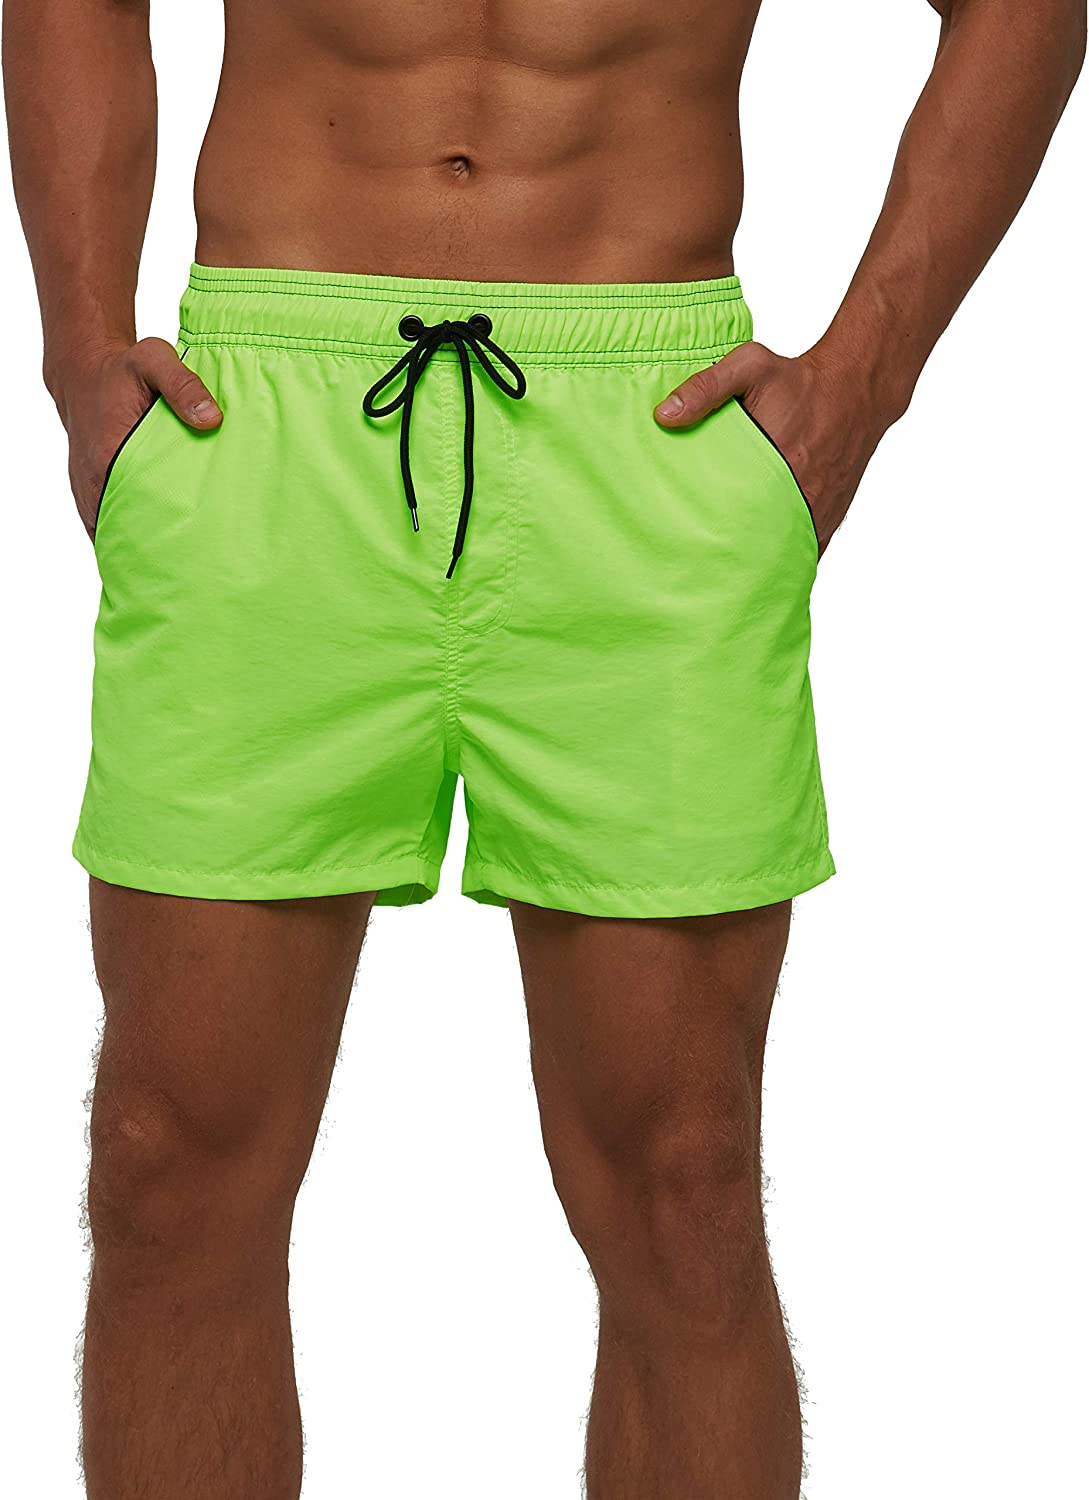 TENMET Men's Quick Dry Swim Trunks Solid Sports Board Shorts Swimsuit with Back Zipper Pockets